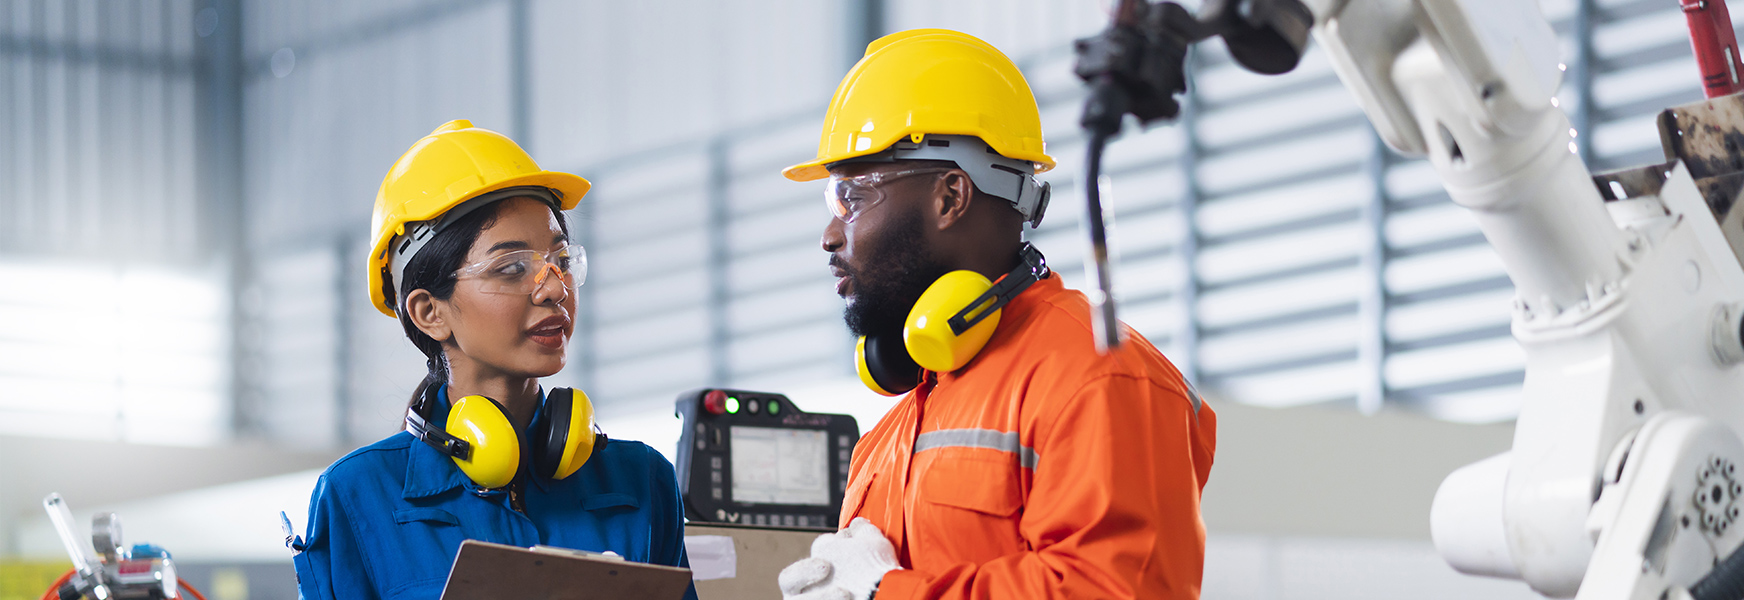 Workers wearing safety equipment having a conversation on factory production floor